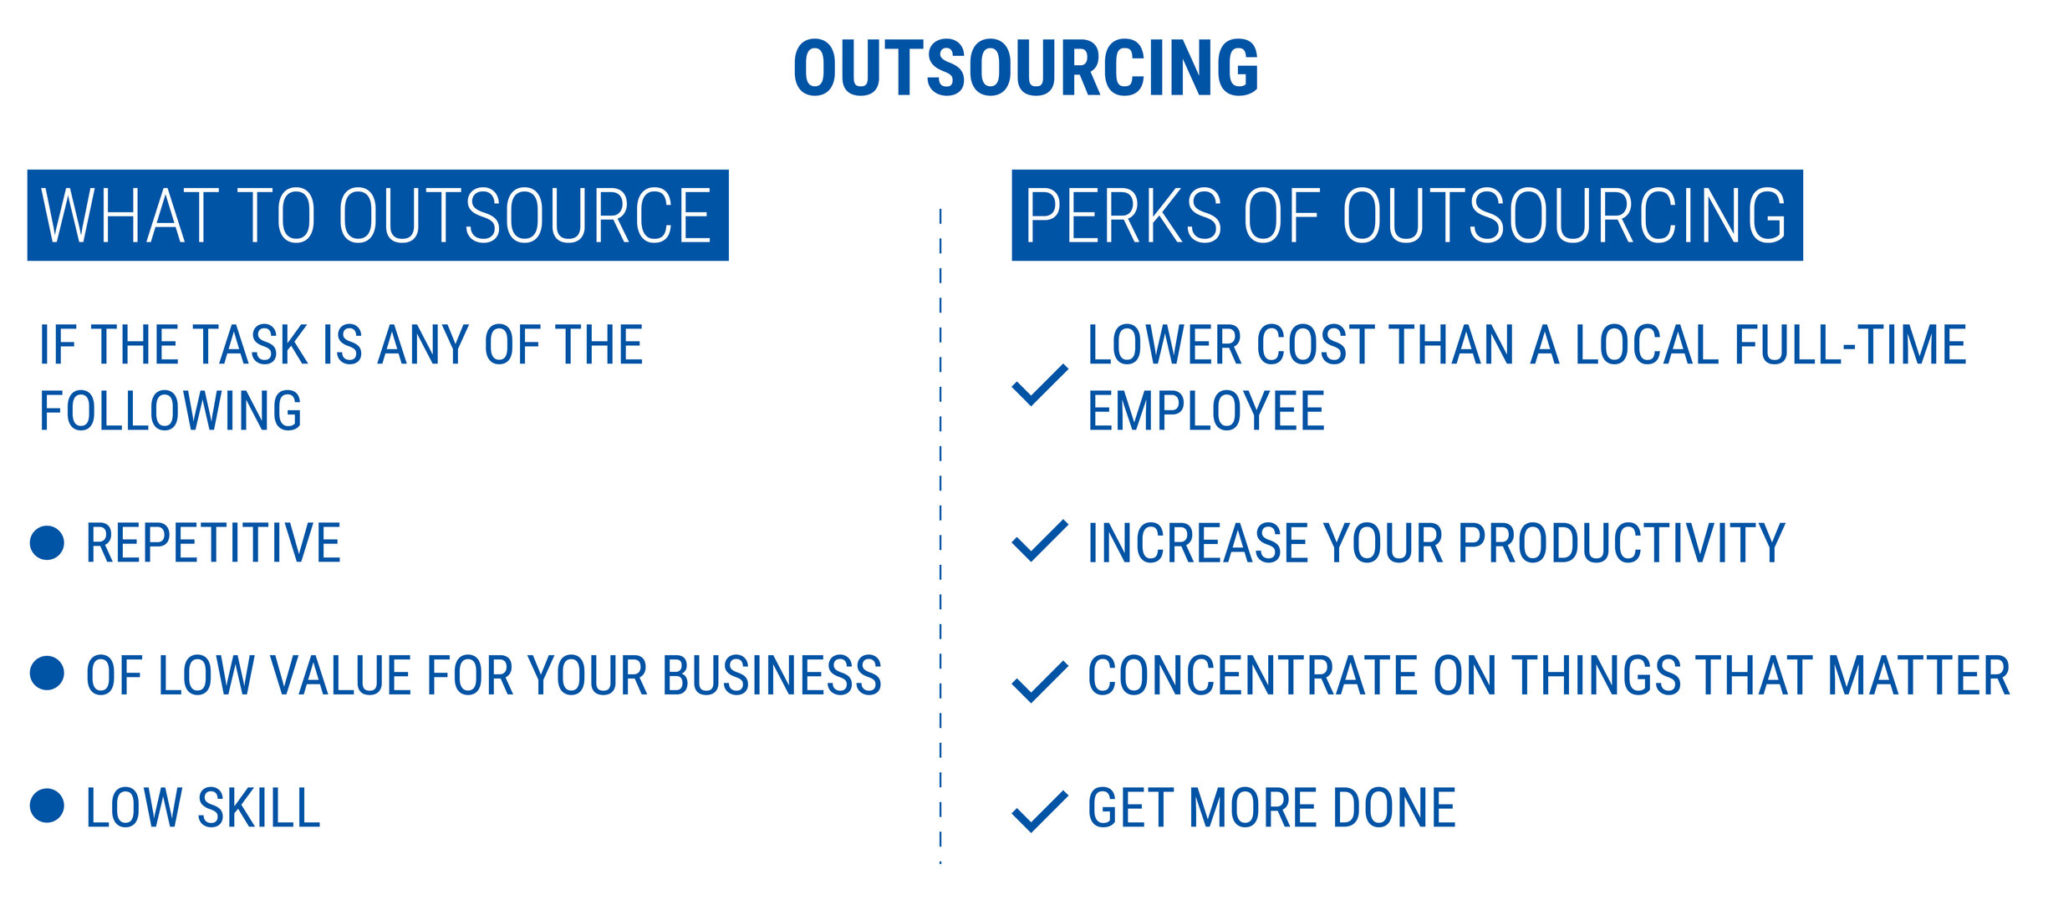 outsourcing - starting a coaching business while working full-time